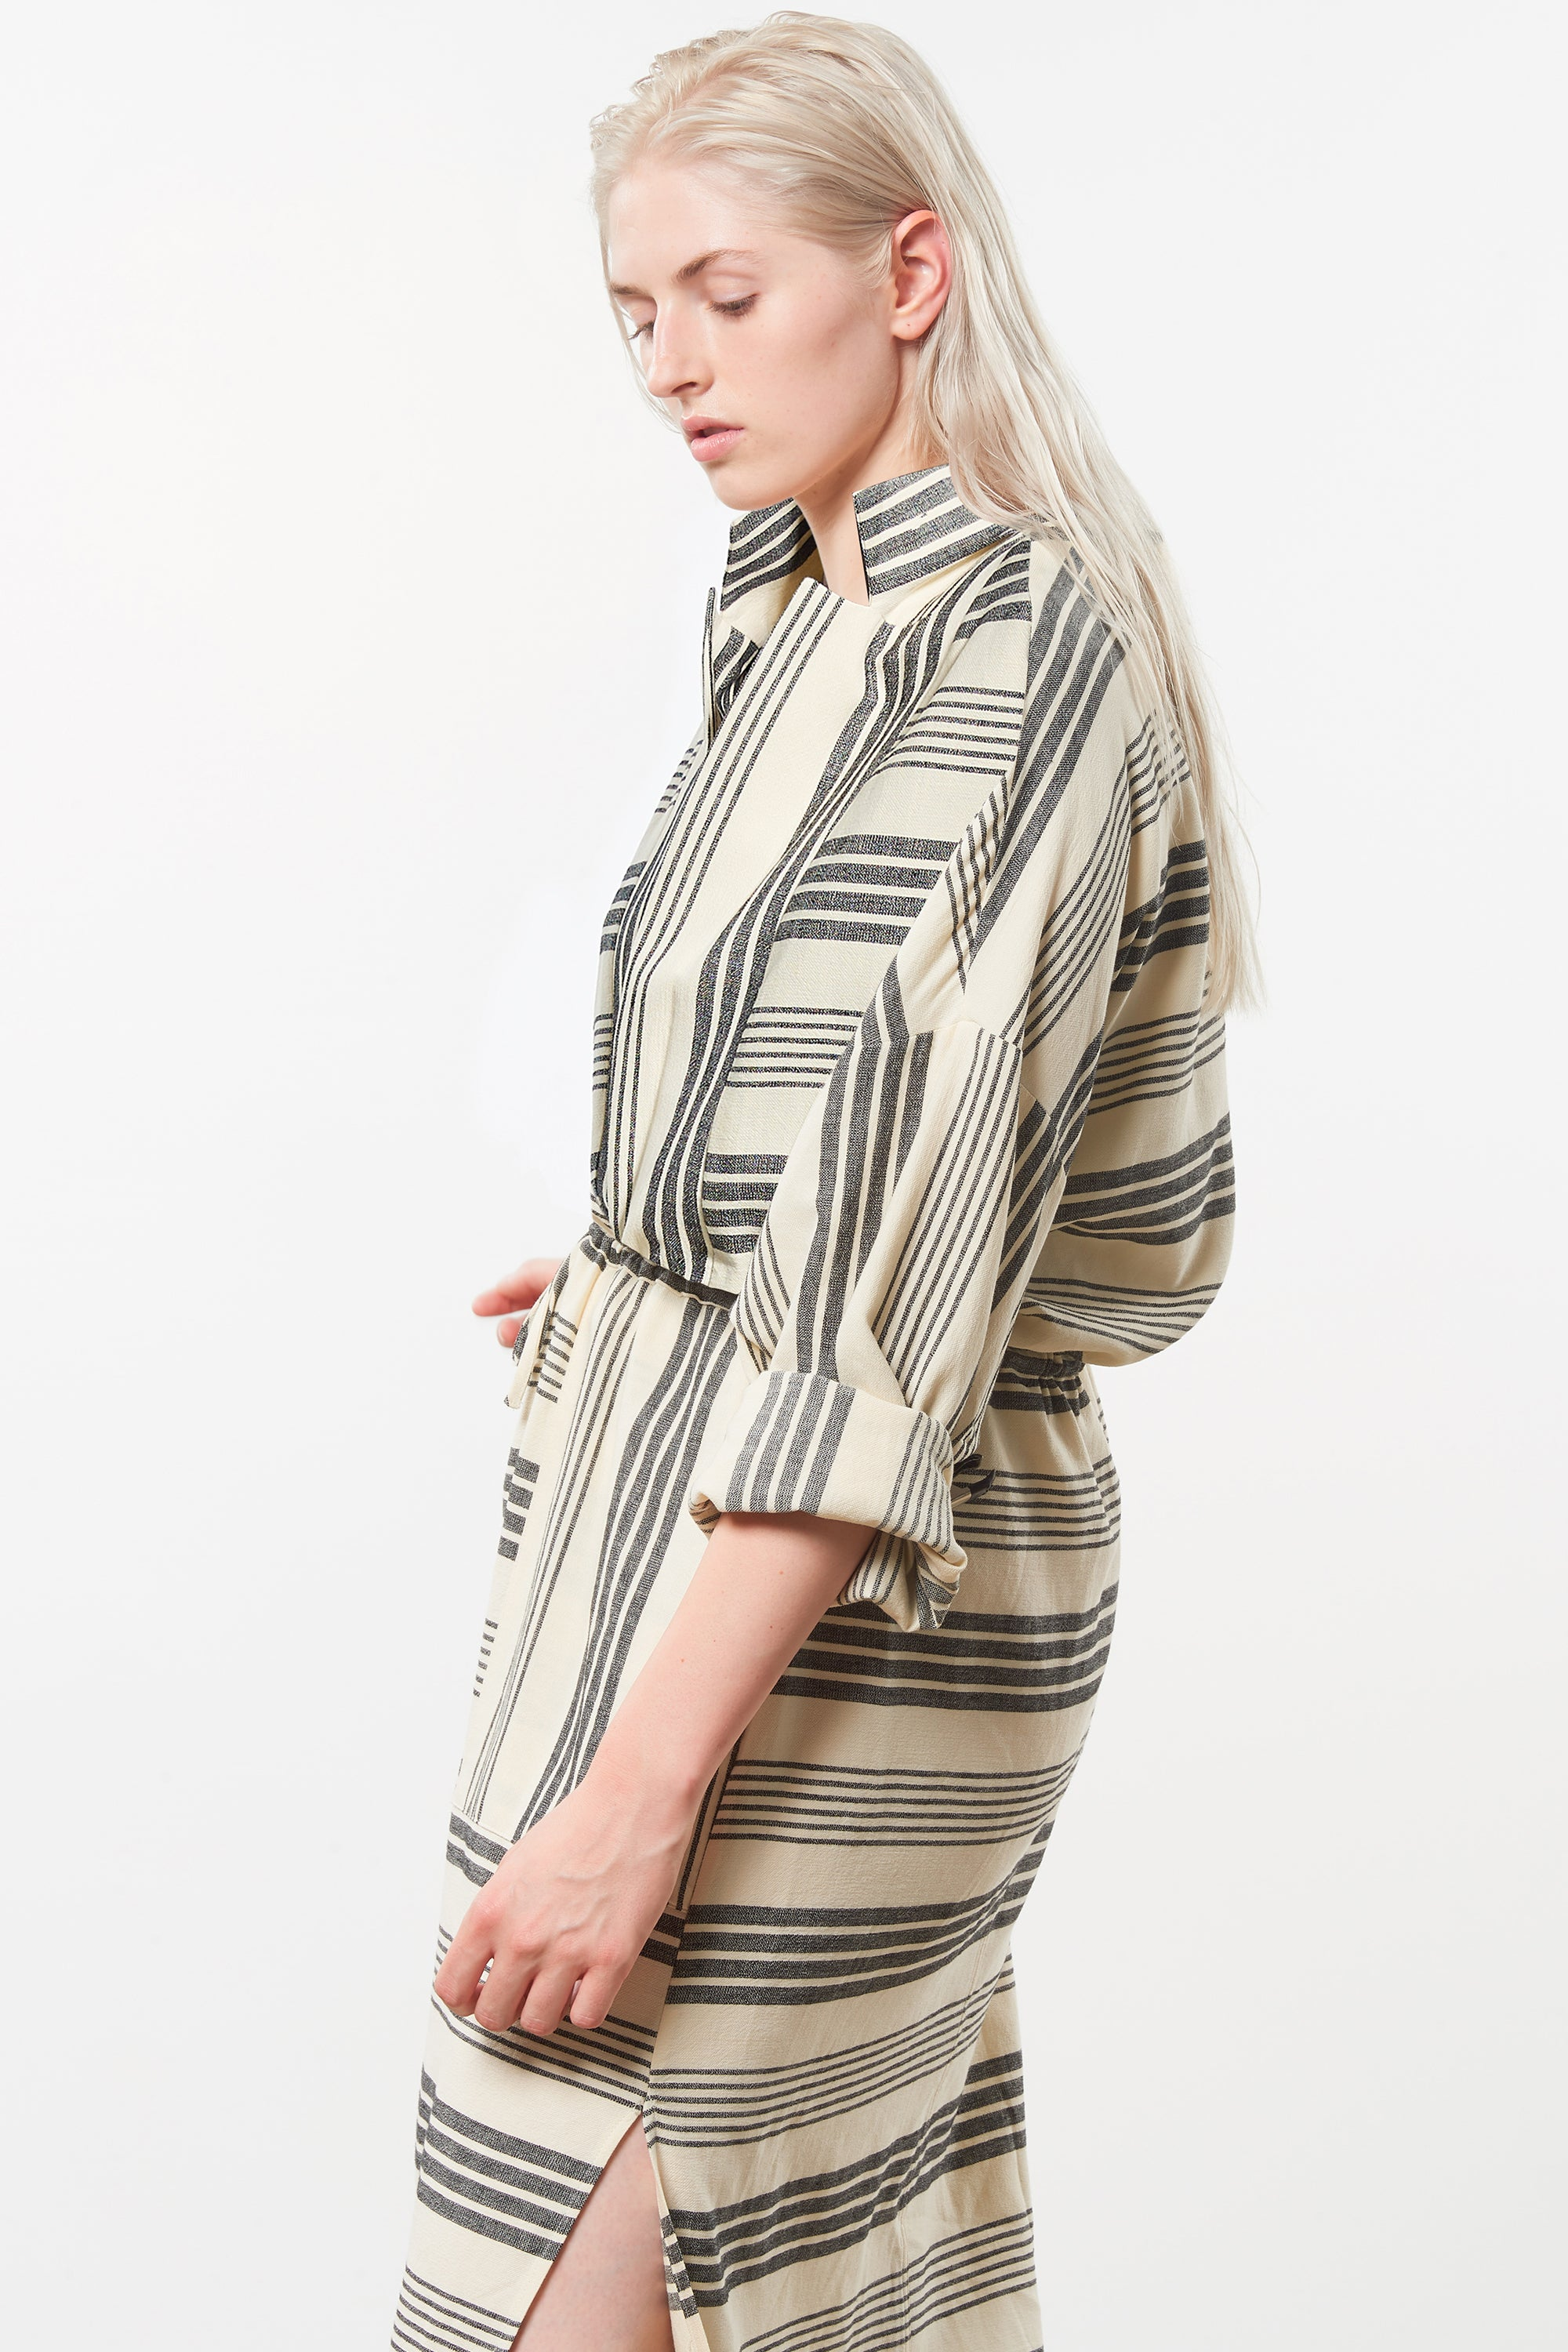 Mara Hoffman Extended Diega Coverup Dress in black striped cotton TENCEL Lyocell blend (side detail)